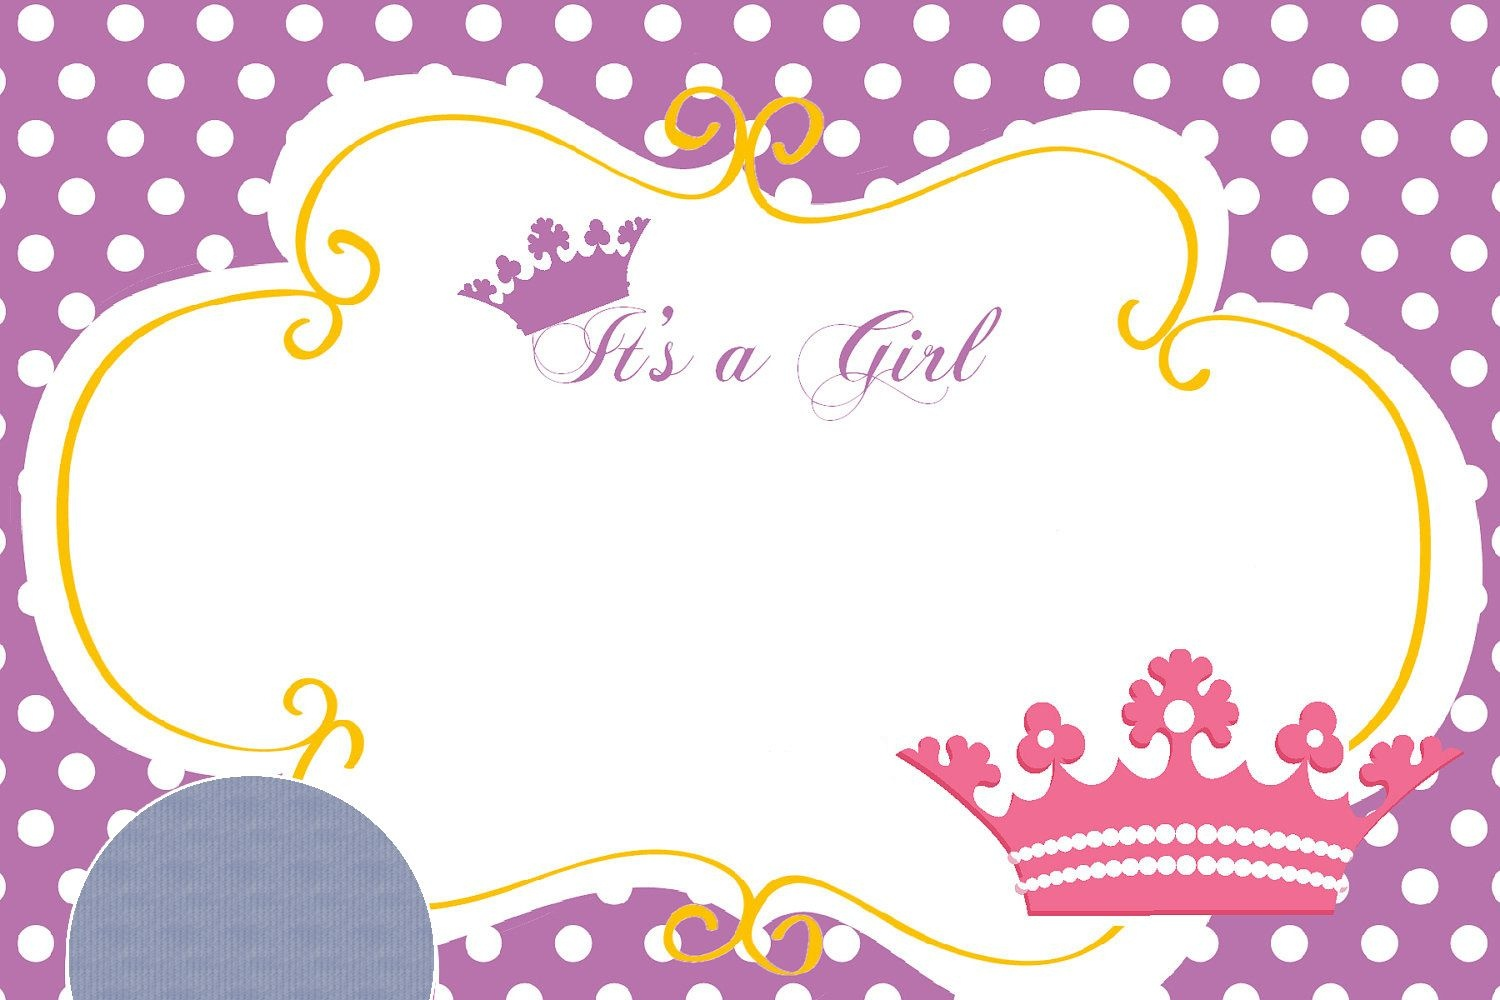 Nice Princess Themed Baby Shower Ideas And Invitation - Free - Free Printable Princess Baby Shower Invitations